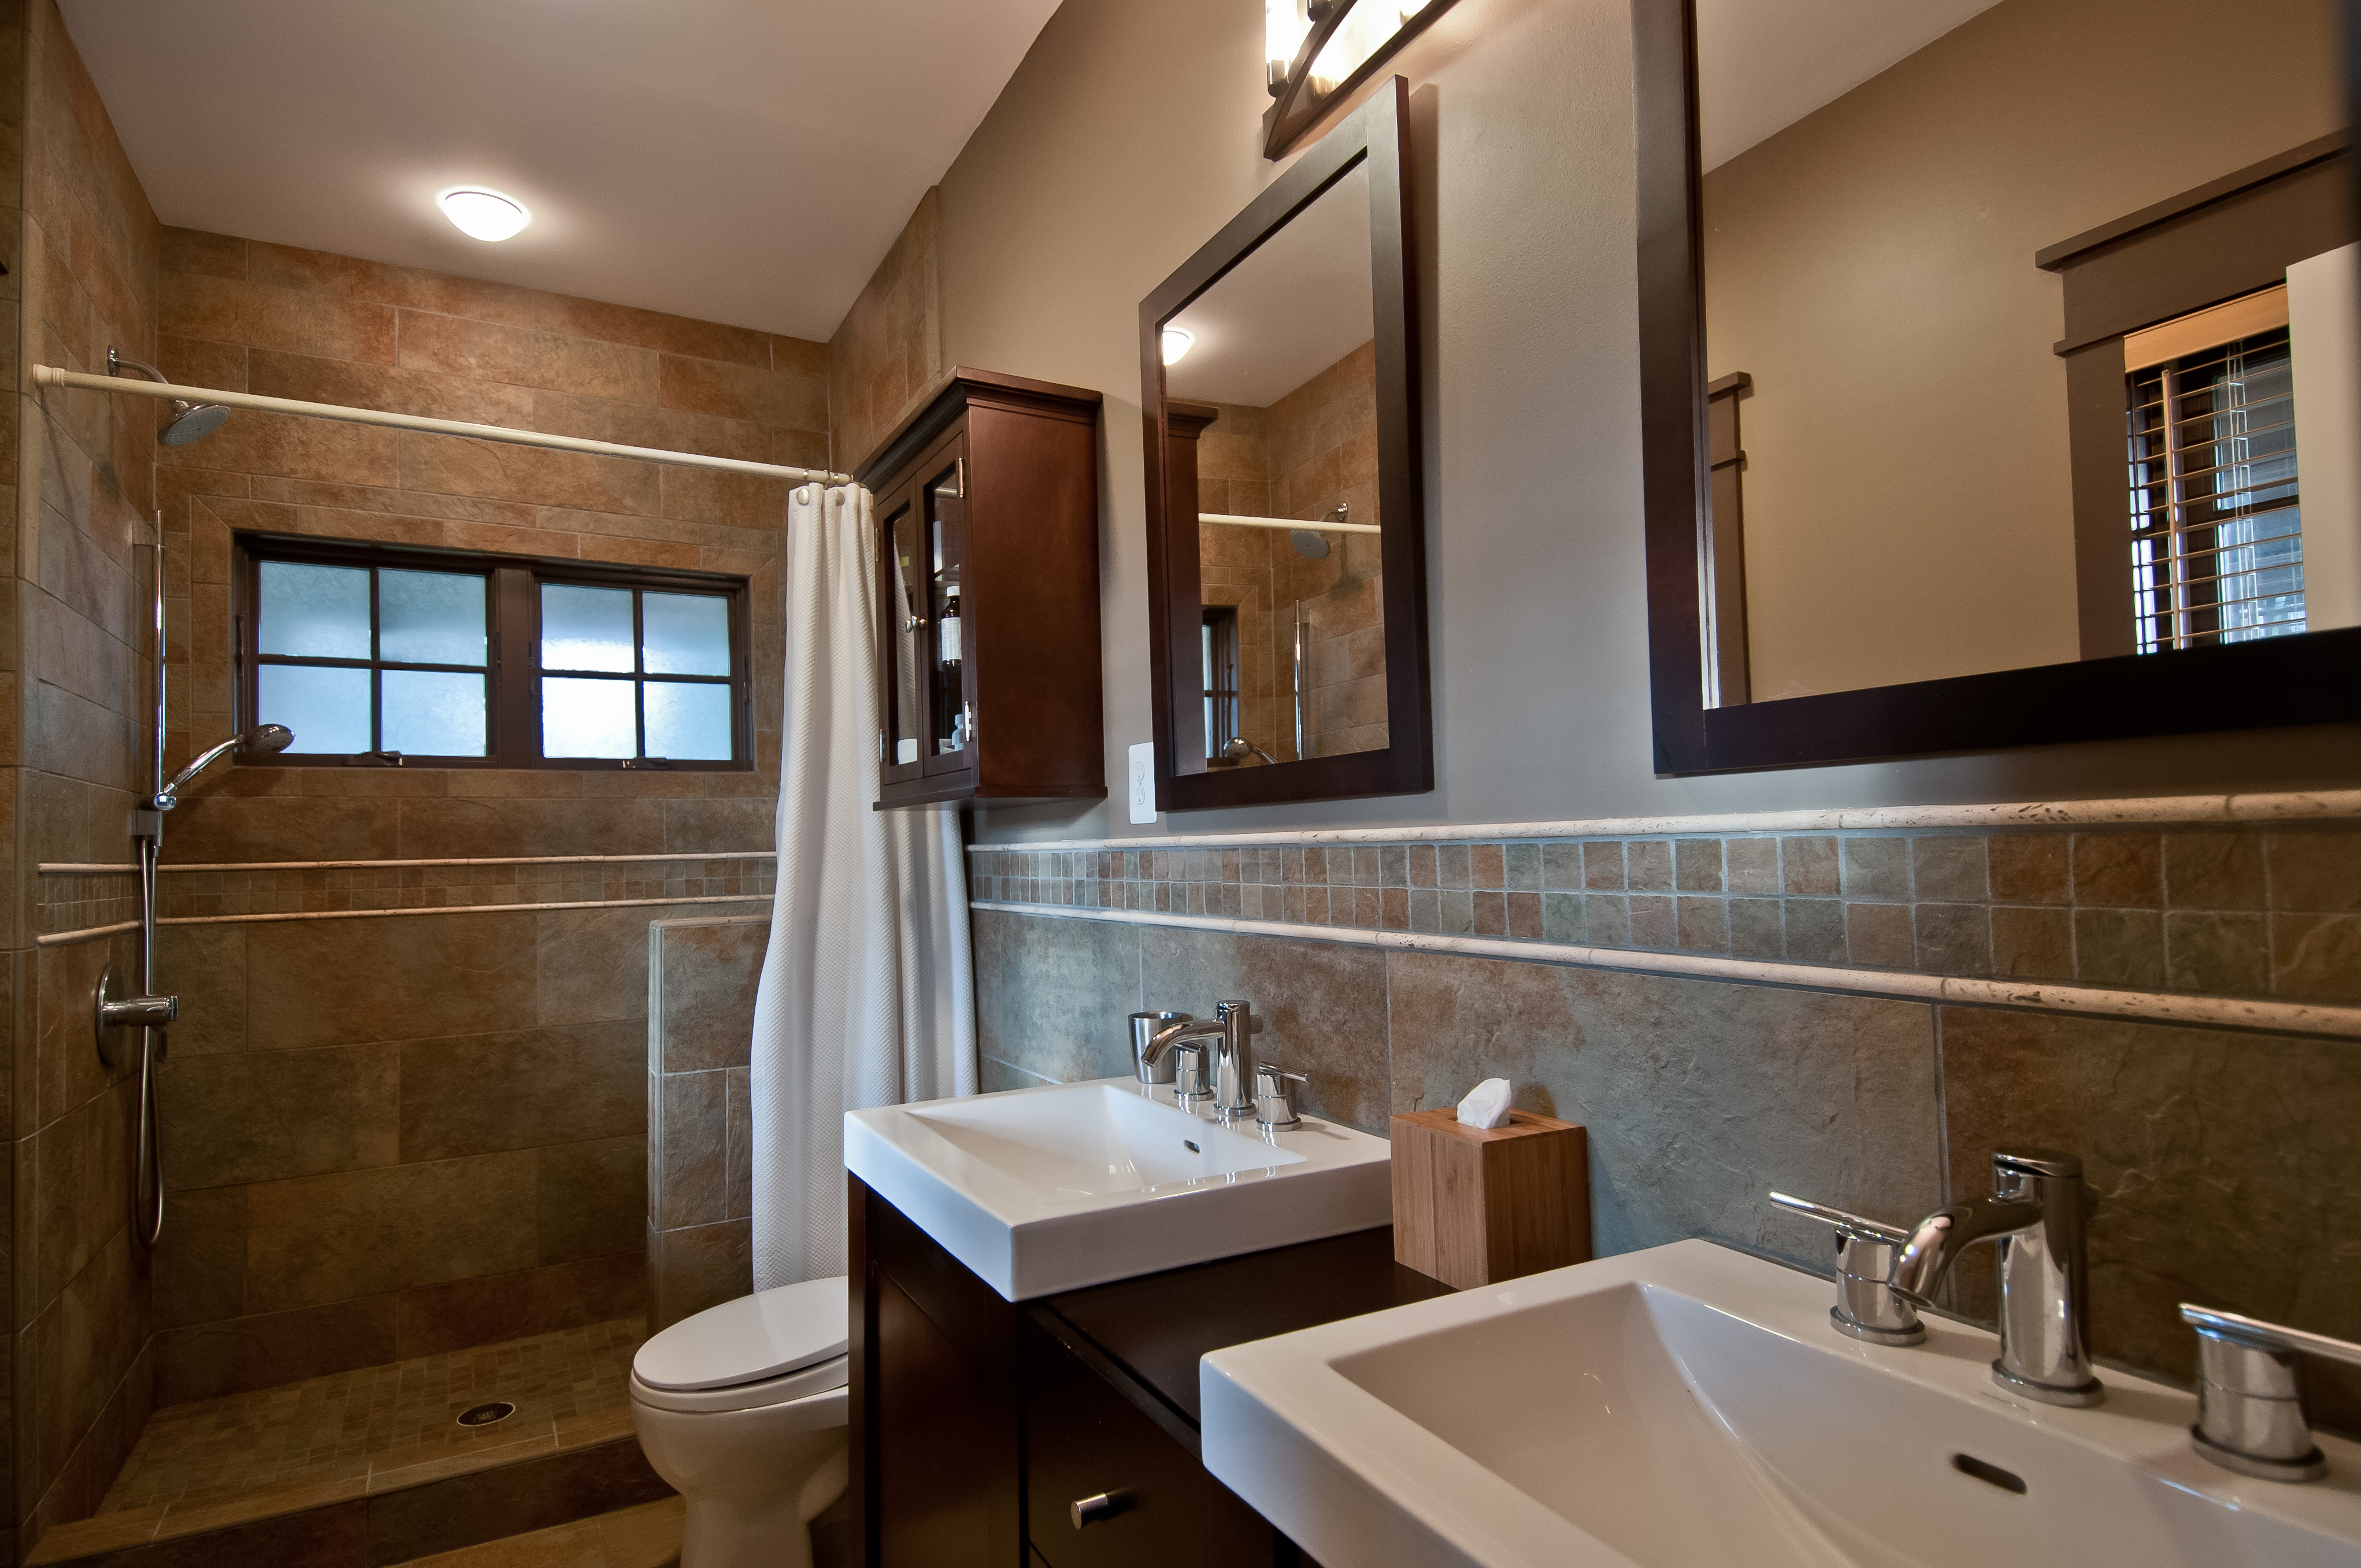 The stone and tile master bathroom has beautiful natural cherry cabinets and an unenclosed shower stall. Chrome fixtures and dual mirrors above the his-and-hers sinks complement the matching medicine cabinet.